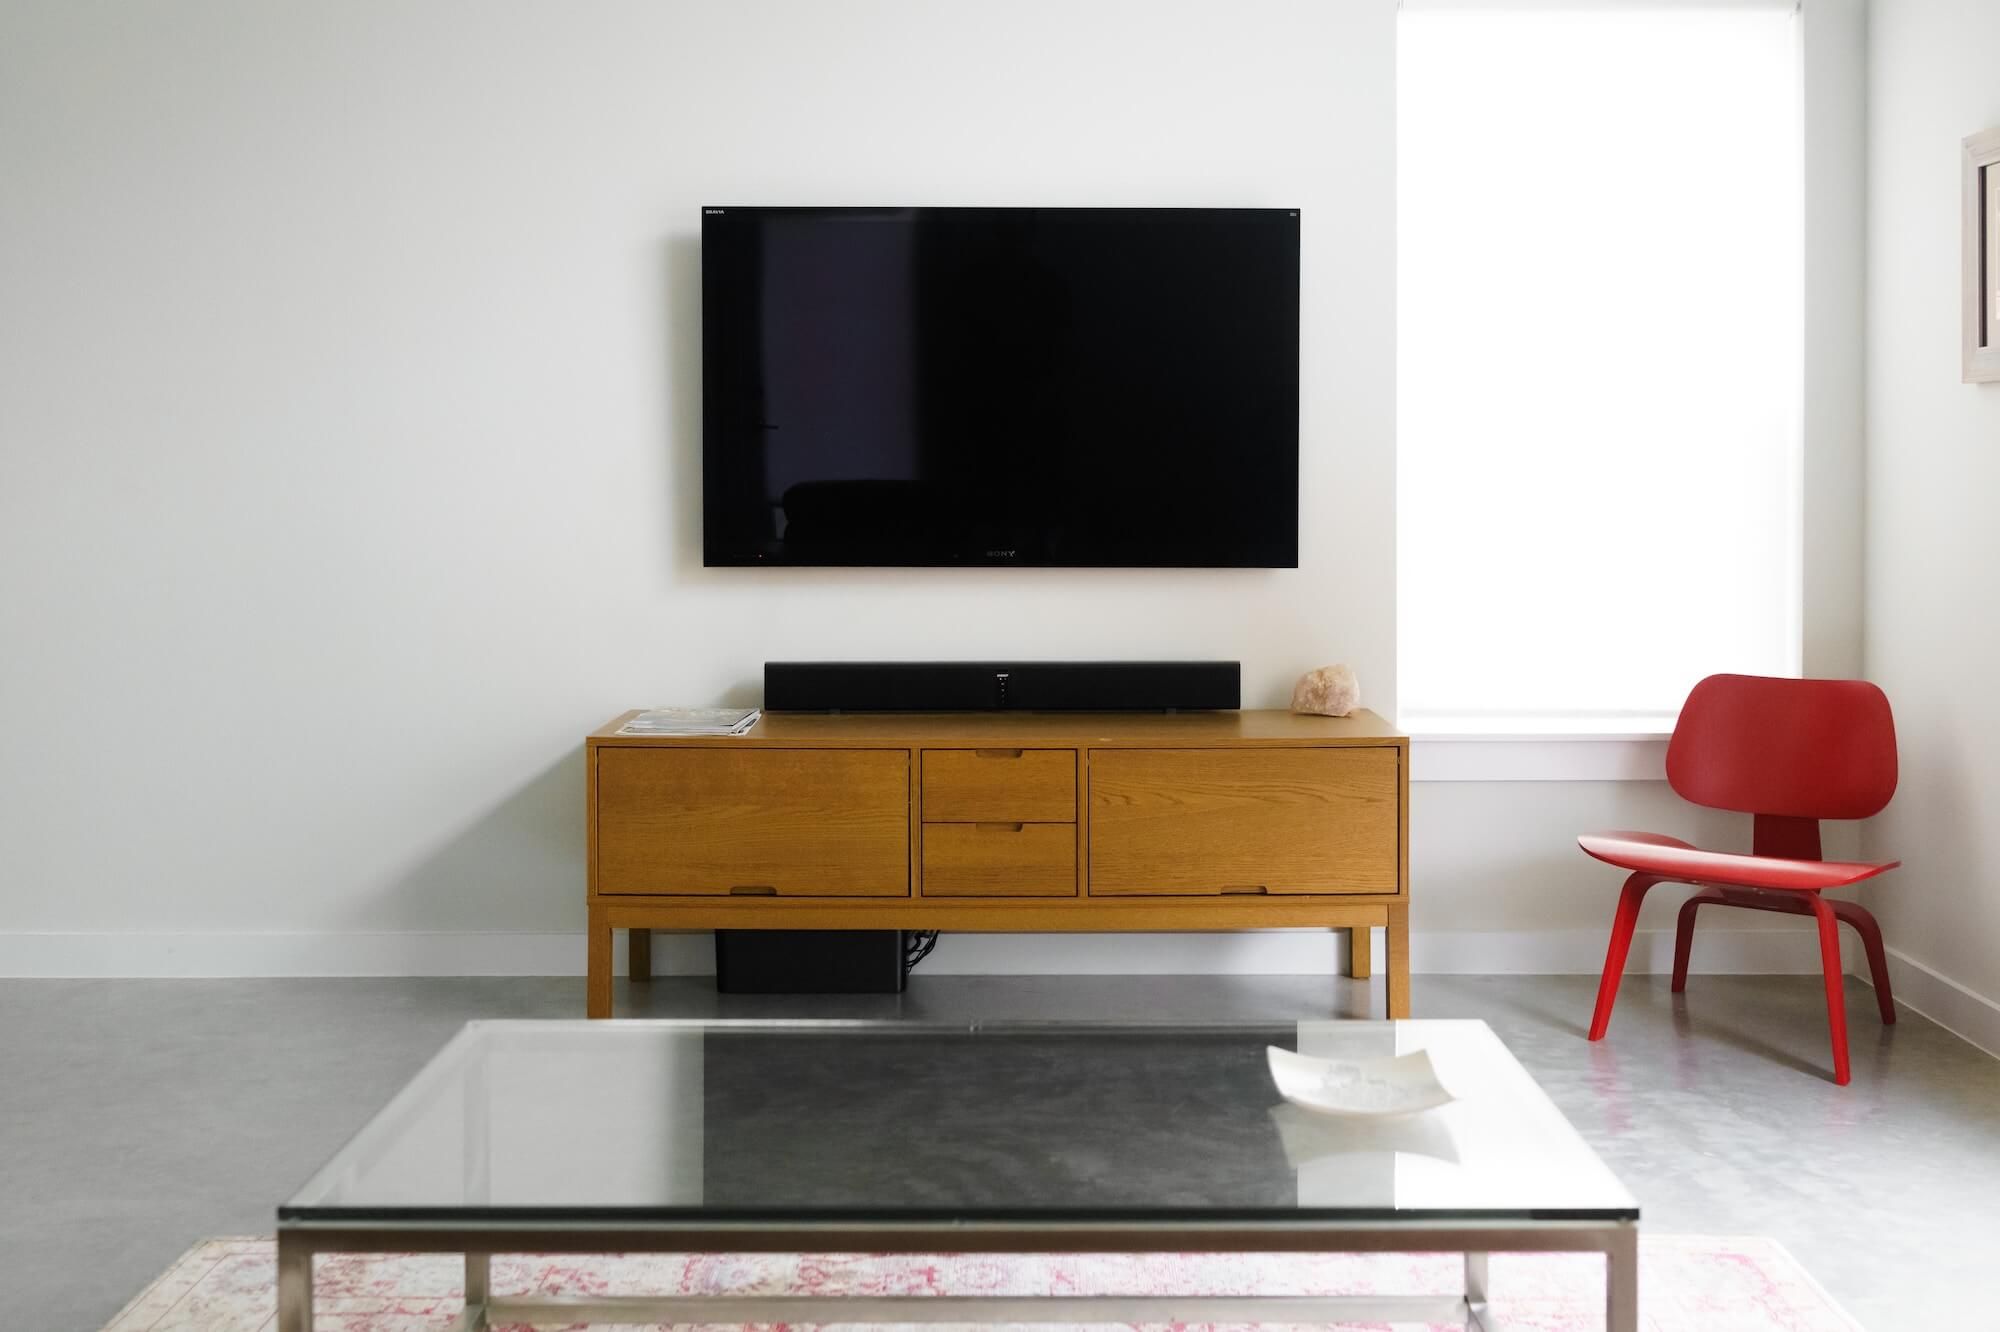 How to Mount a 75 Inch TV by Yourself: Everything You'll Need to Know